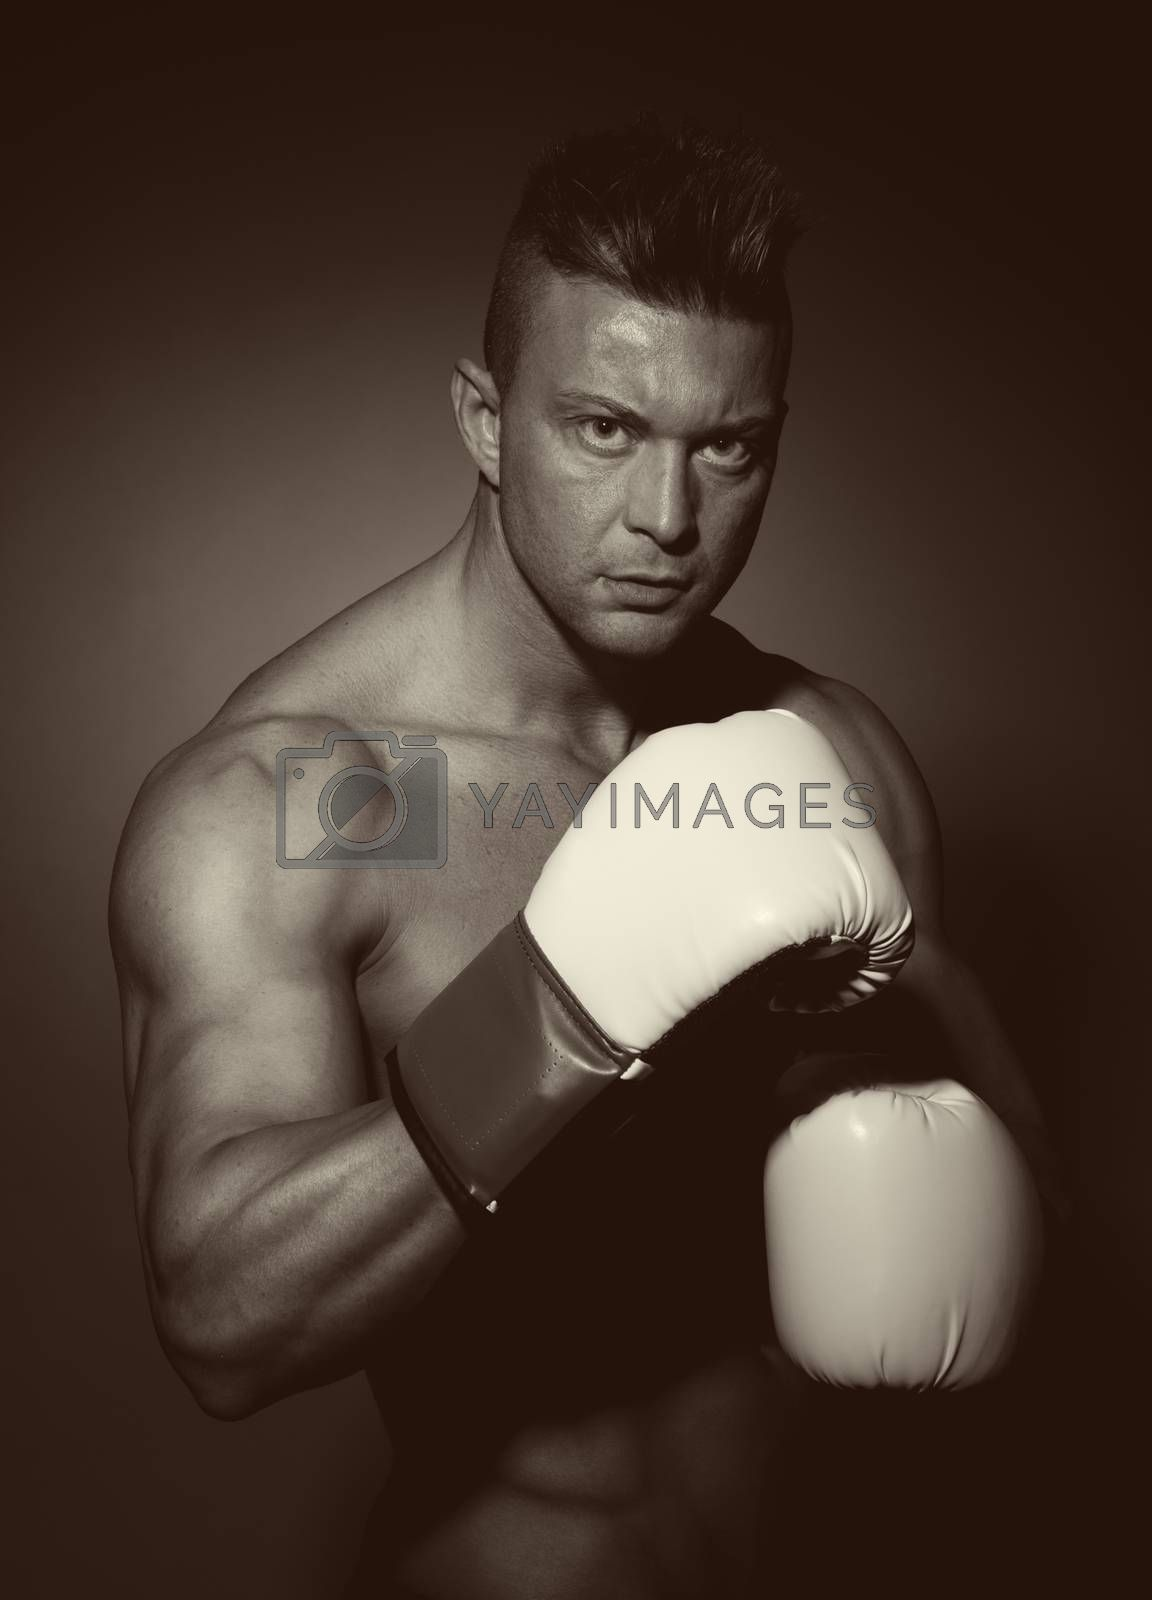 Boxer posing on dark background with fists raised.